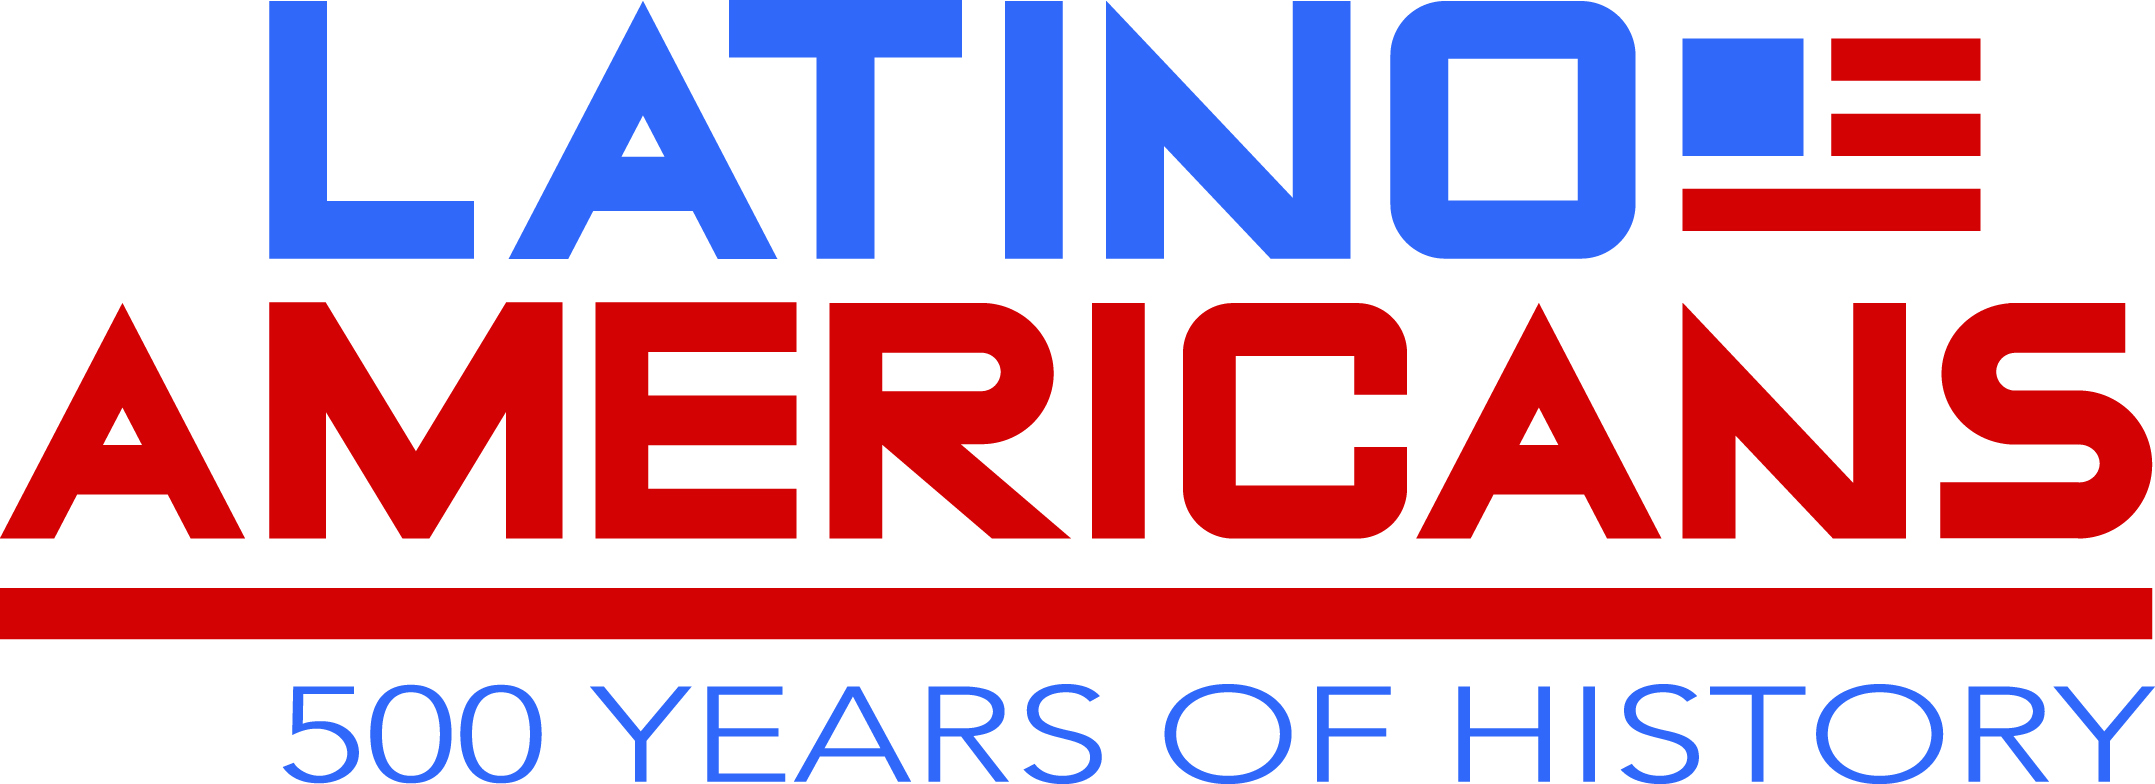 Latino americans 500 years of history use chrome firefox safari latino americans 500 years of history produced by the national endowment for the humanities neh and the american library association ala is a fandeluxe Choice Image